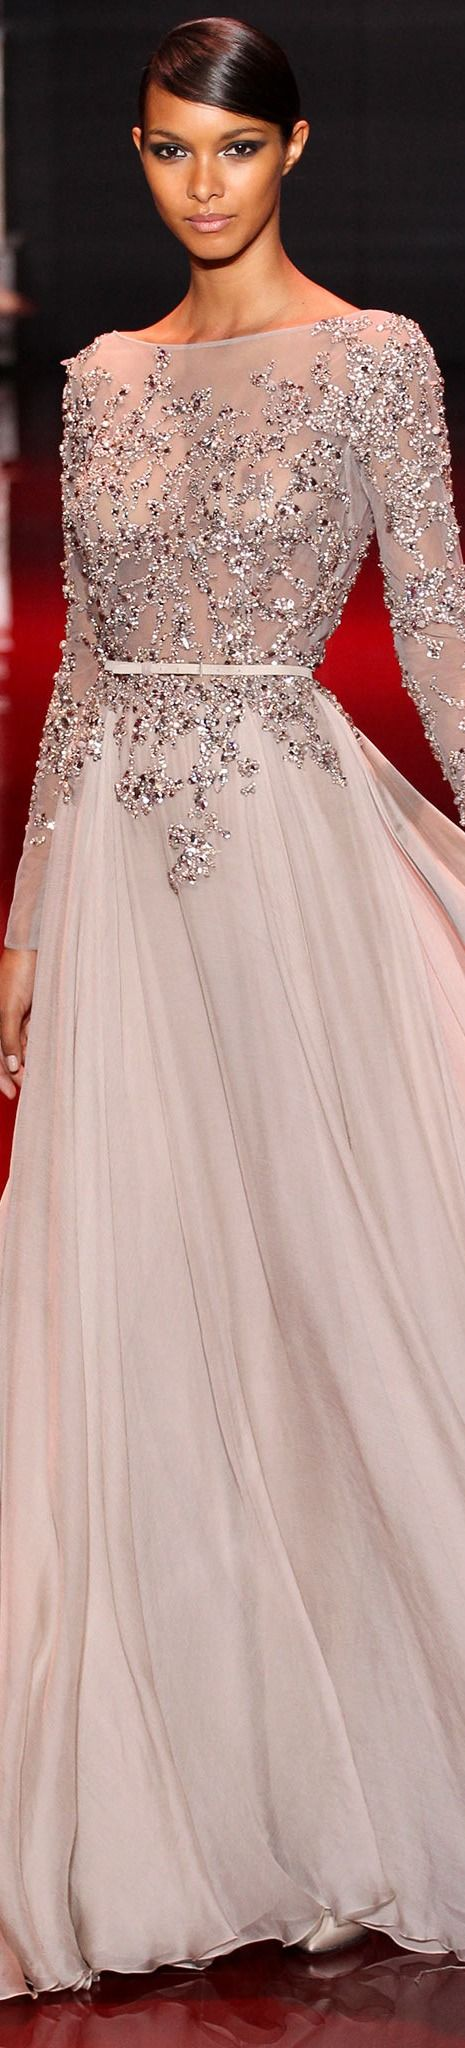 Elie Saab Fall 2013 Couture